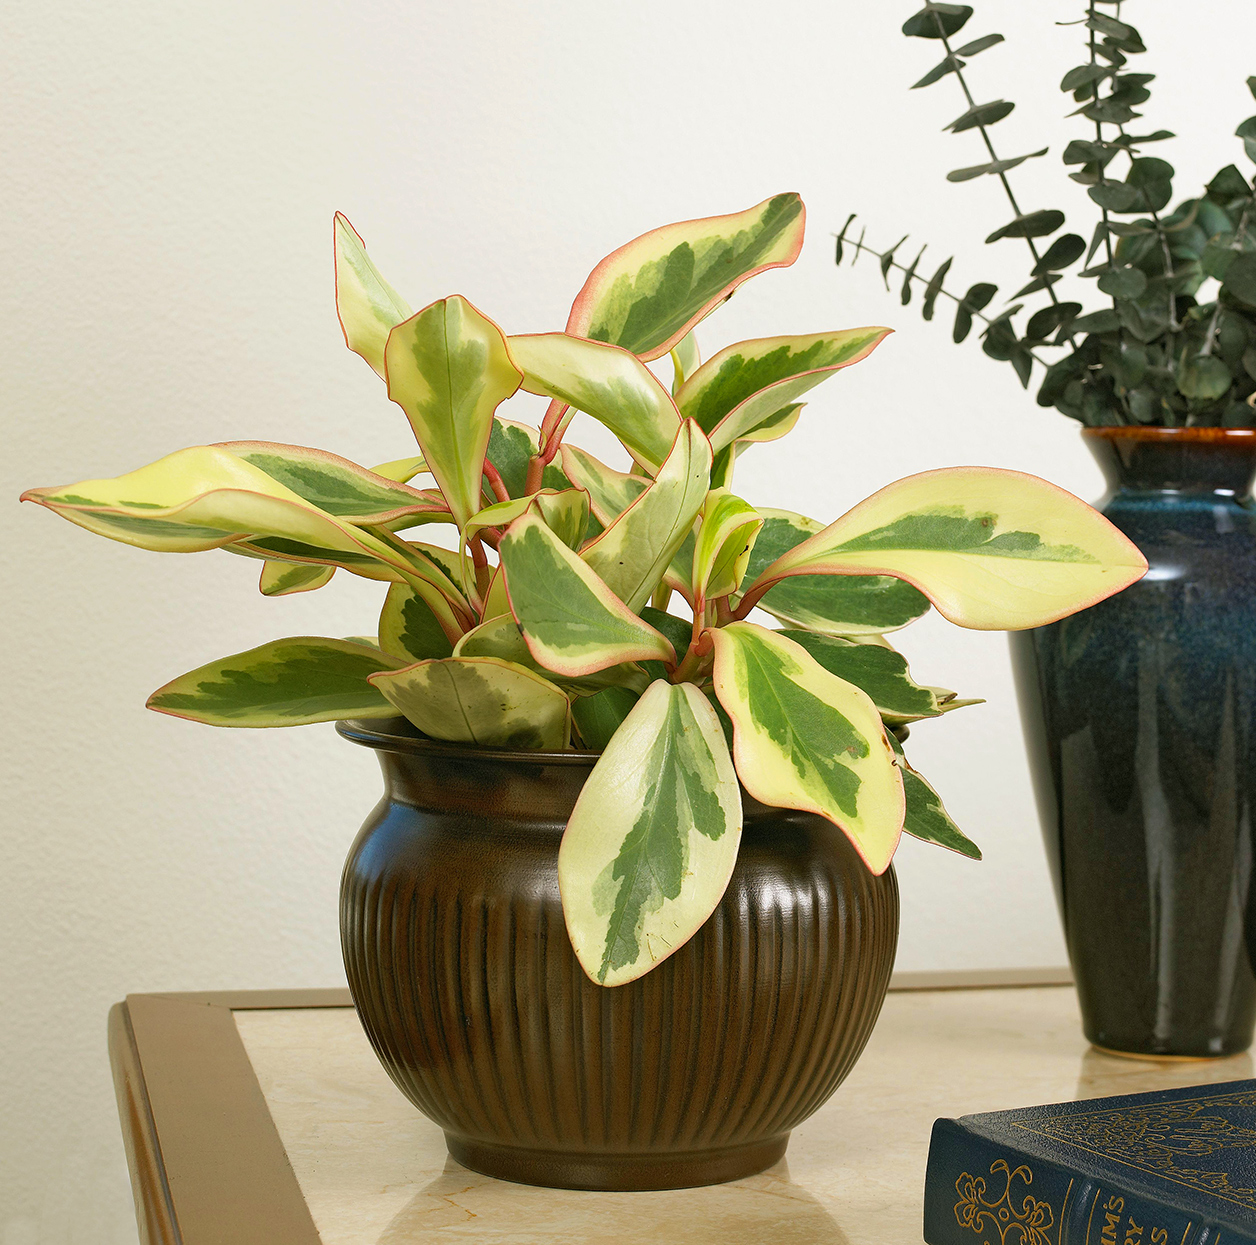 red-edge peperomia clusifolia 'rainbow' with cream and green leaves